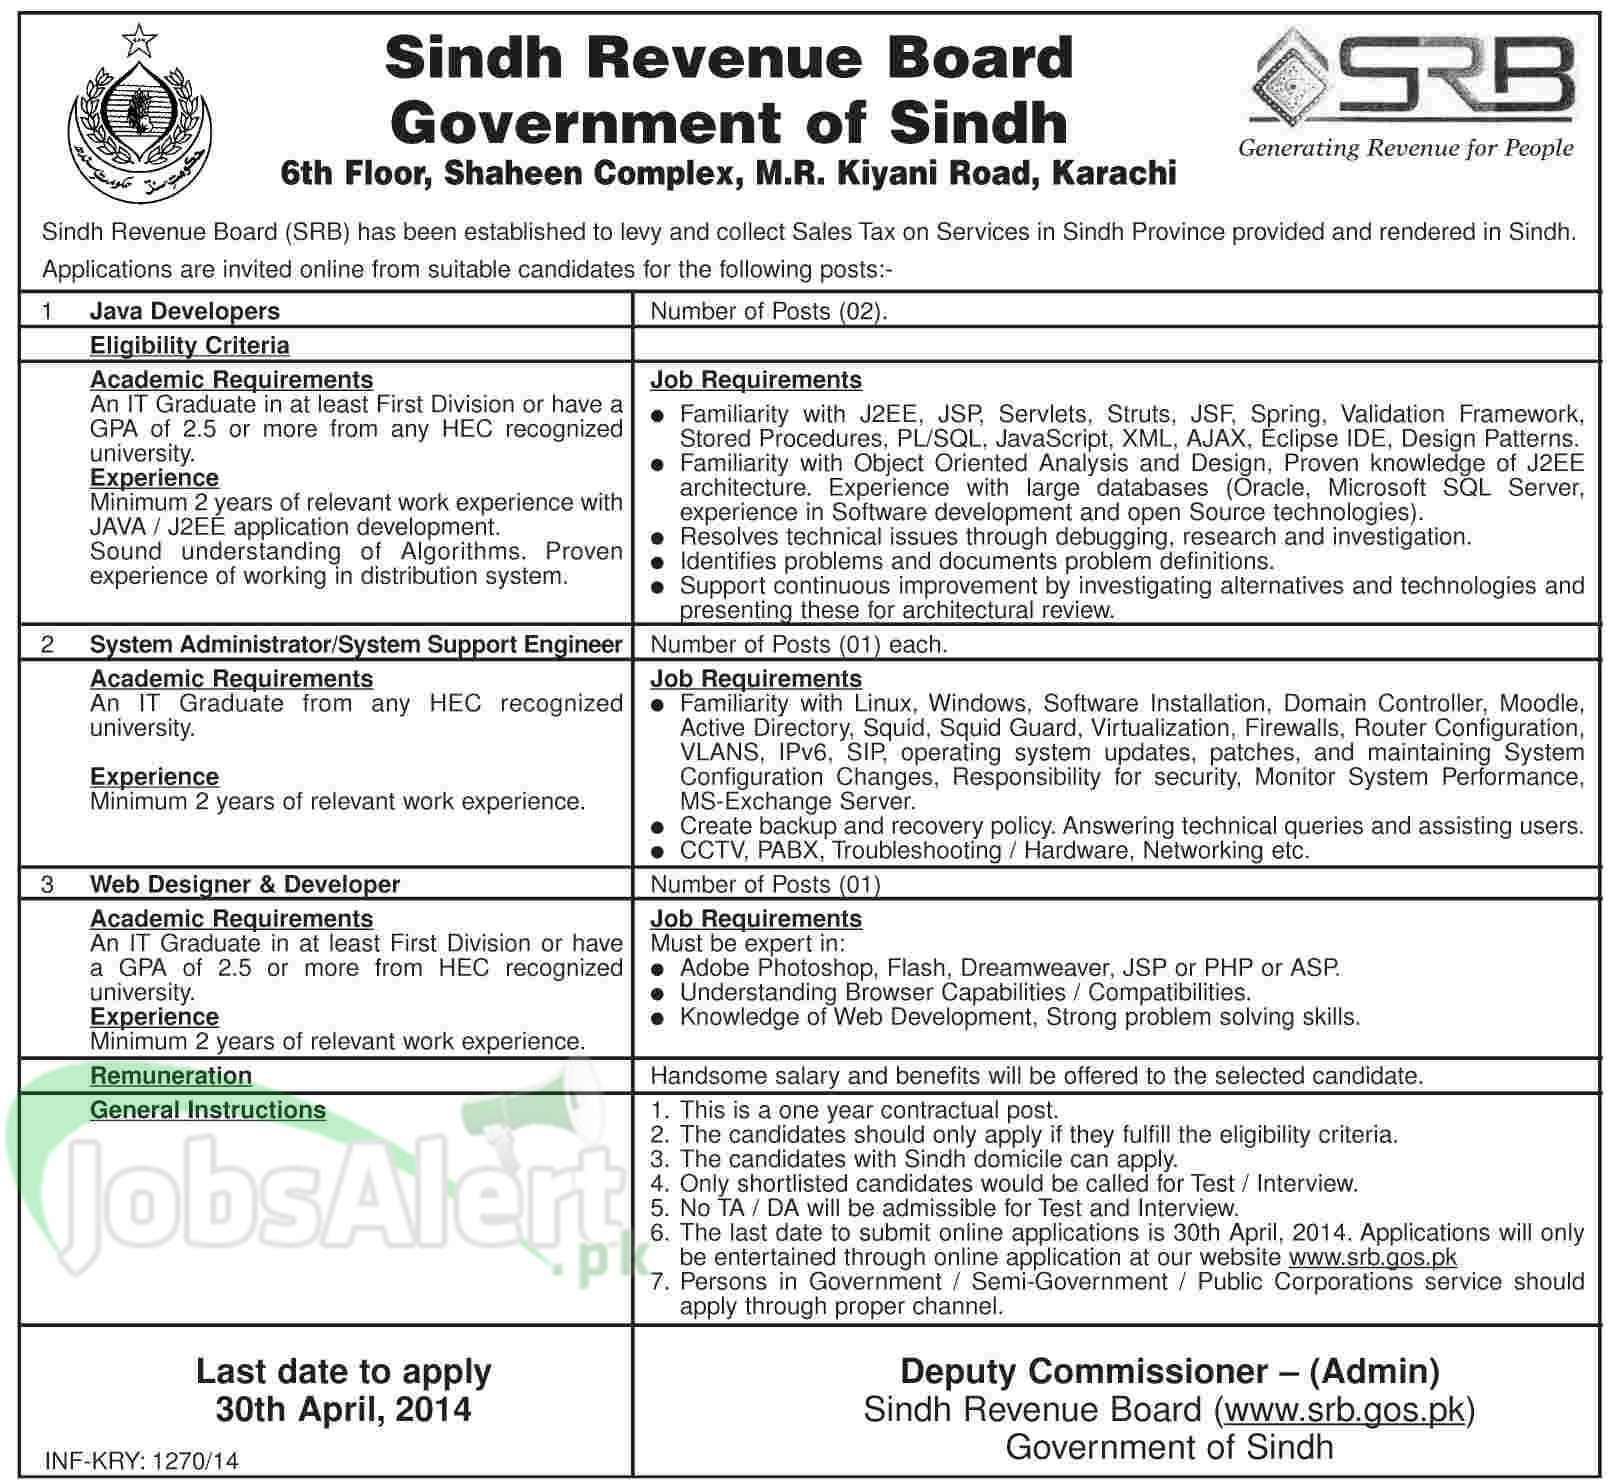 Sindh Revenue Board Jobs 2014 Government of Sindh Karachi